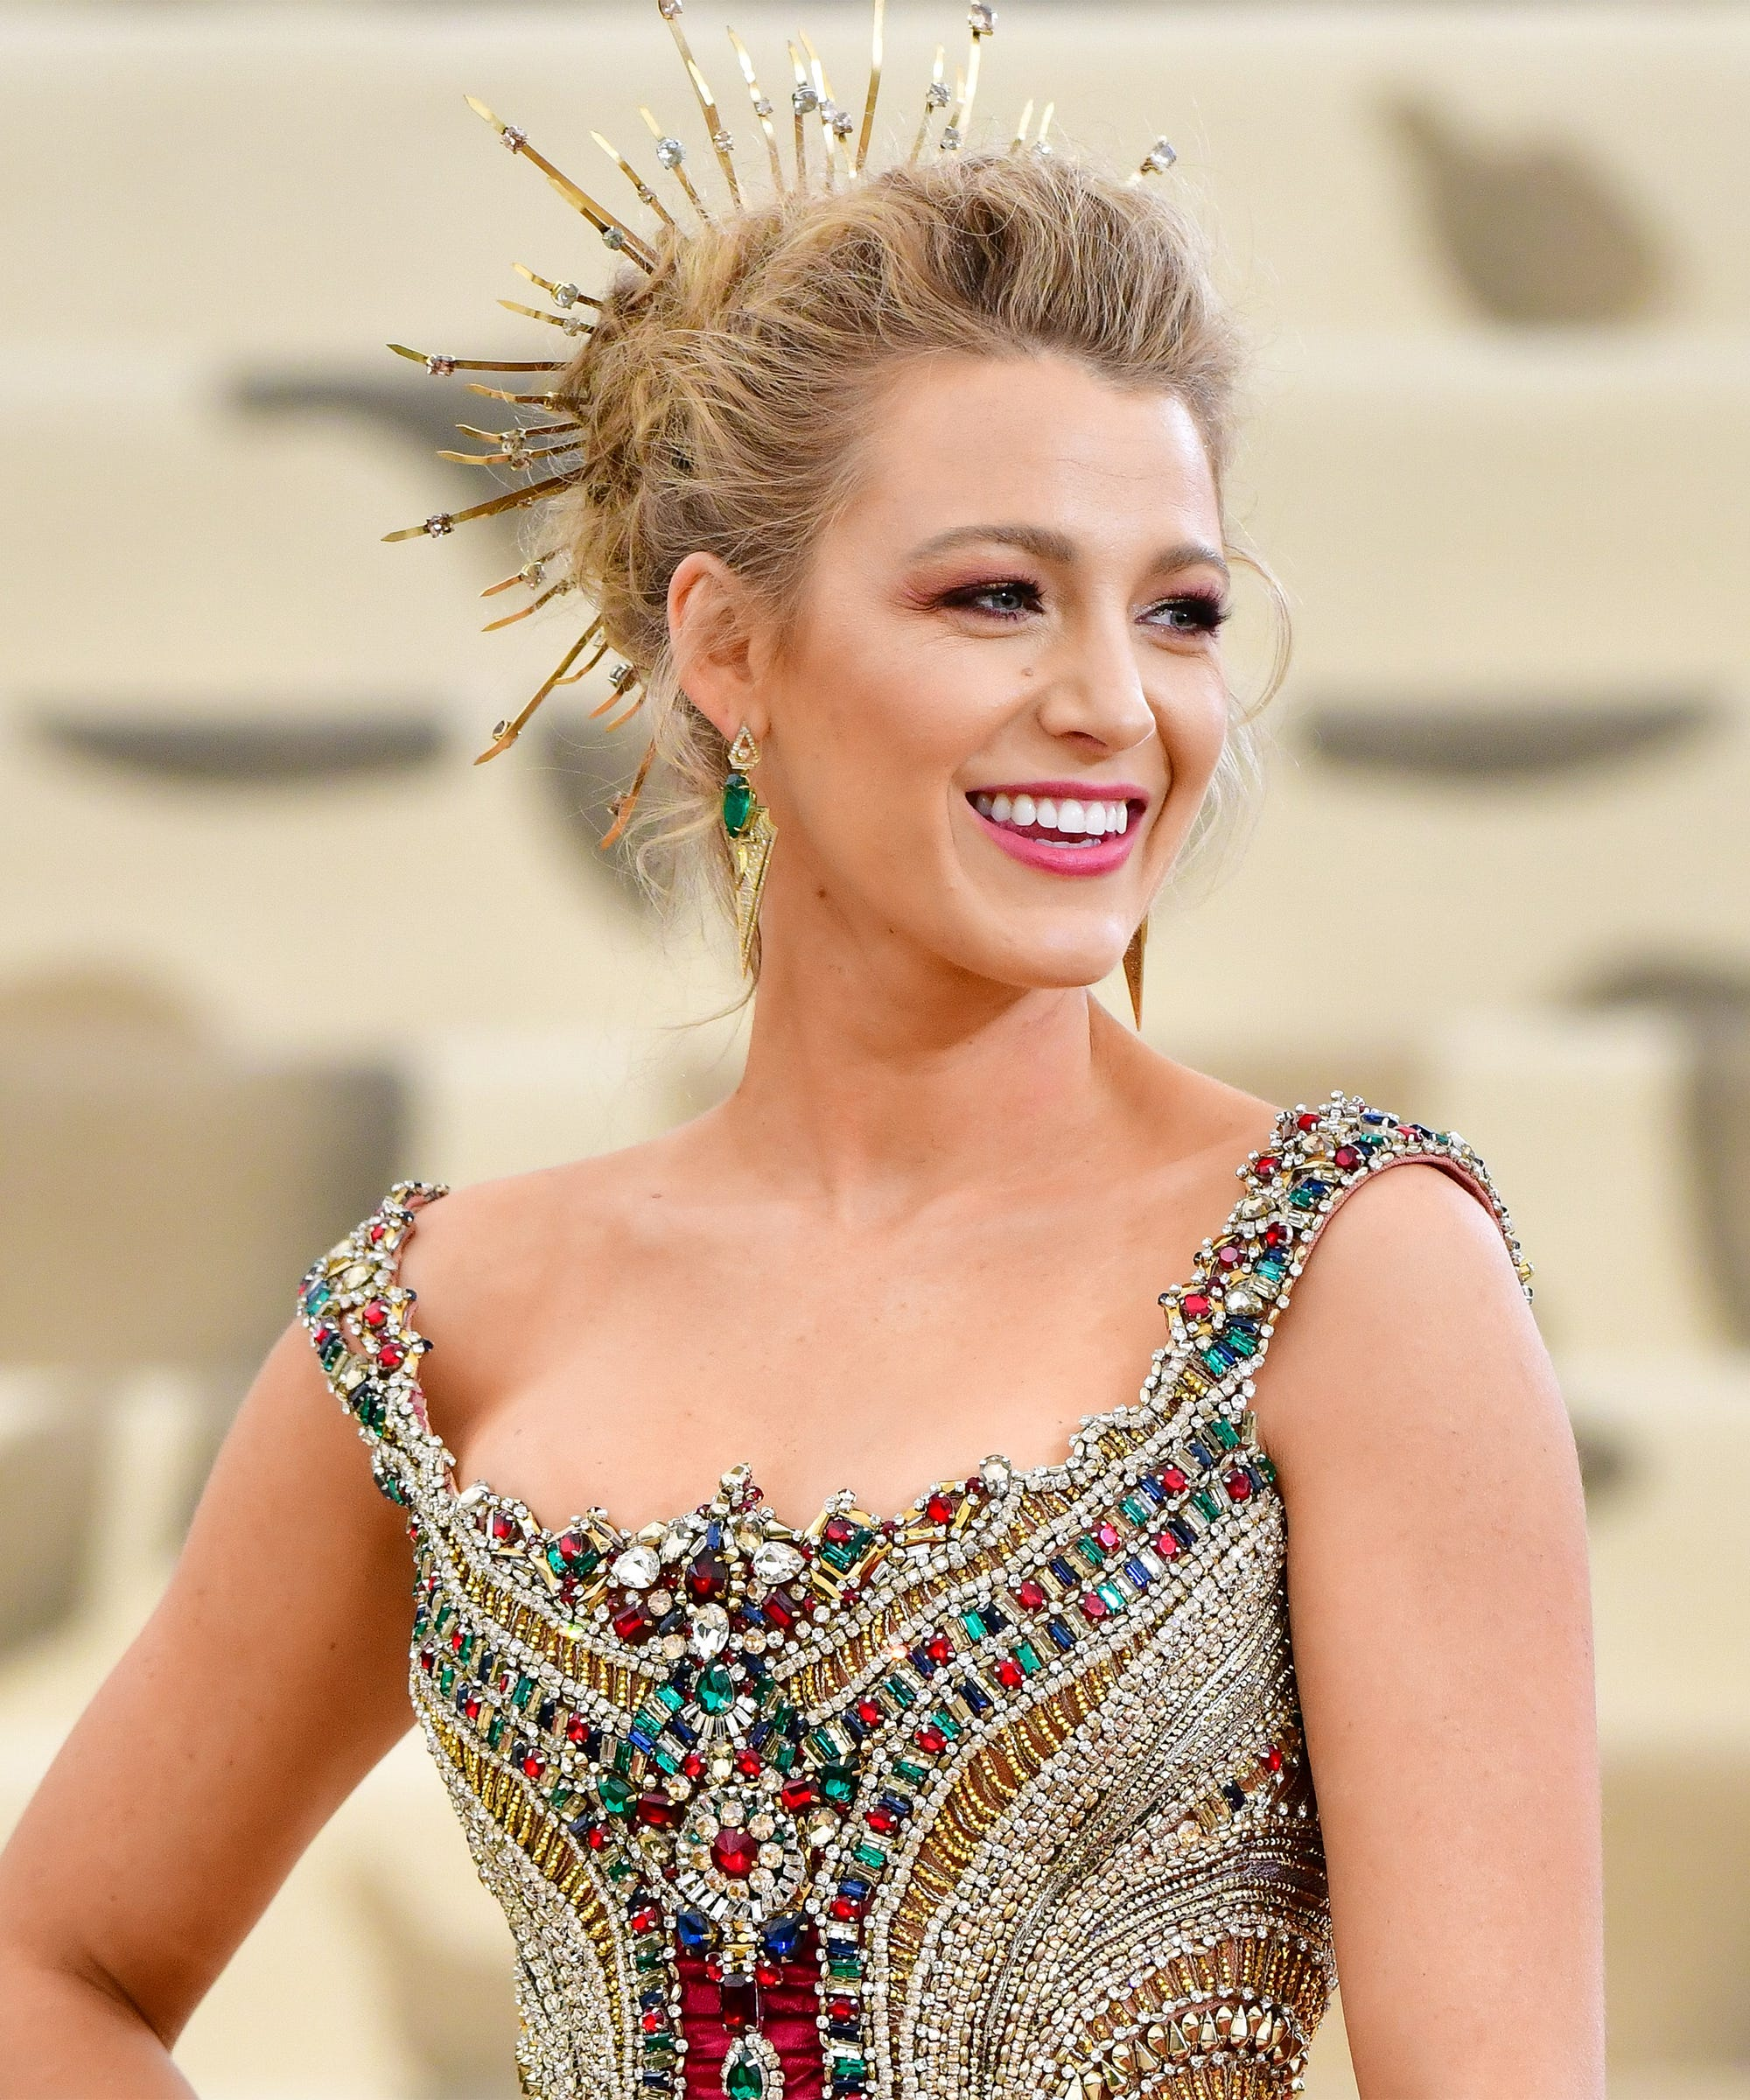 blake lively net worth - HD 1184×1079